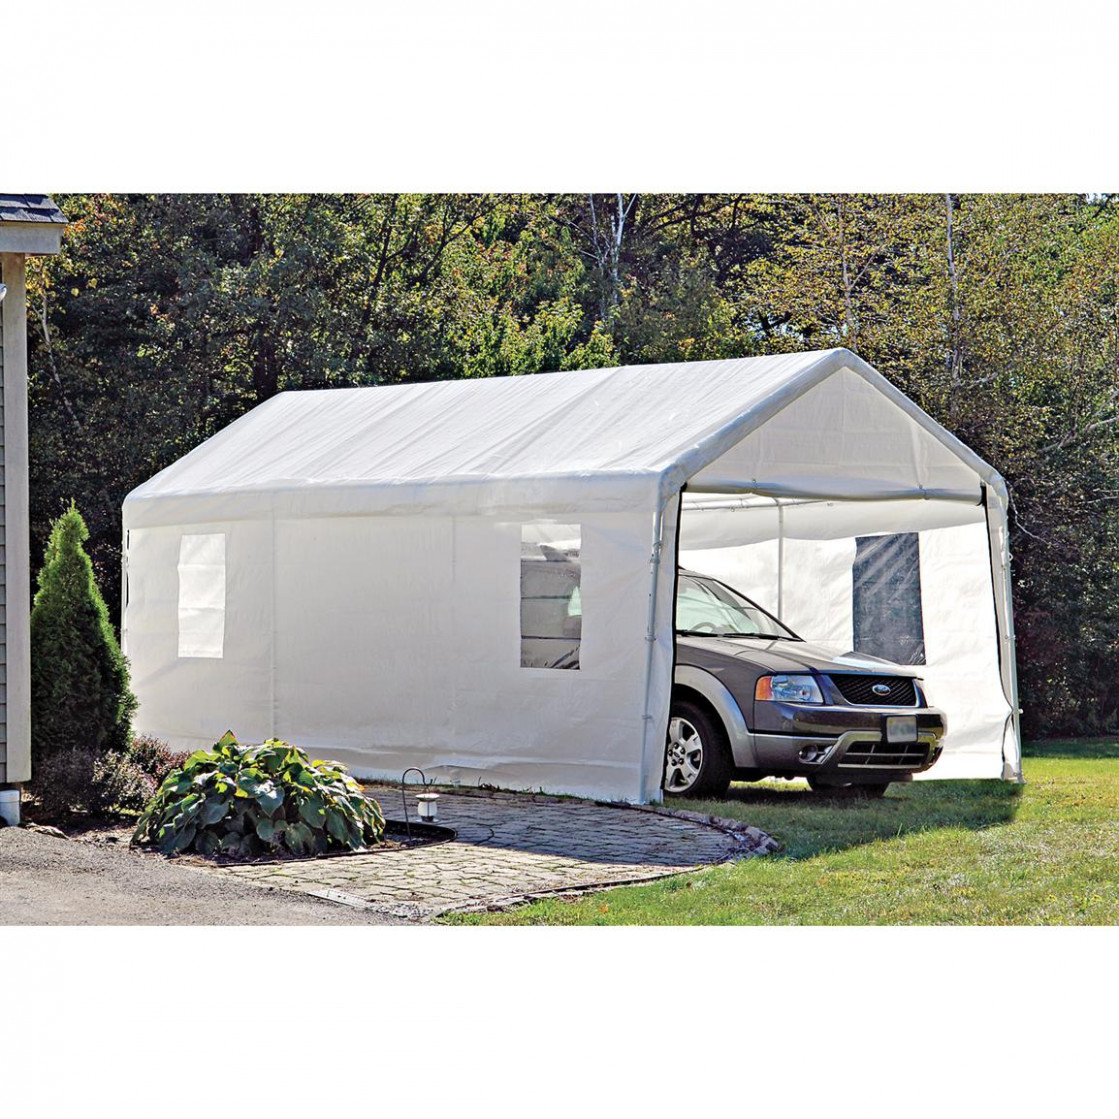 ShelterLogic Portable Garage Canopy Carport, 9' X 9 ..